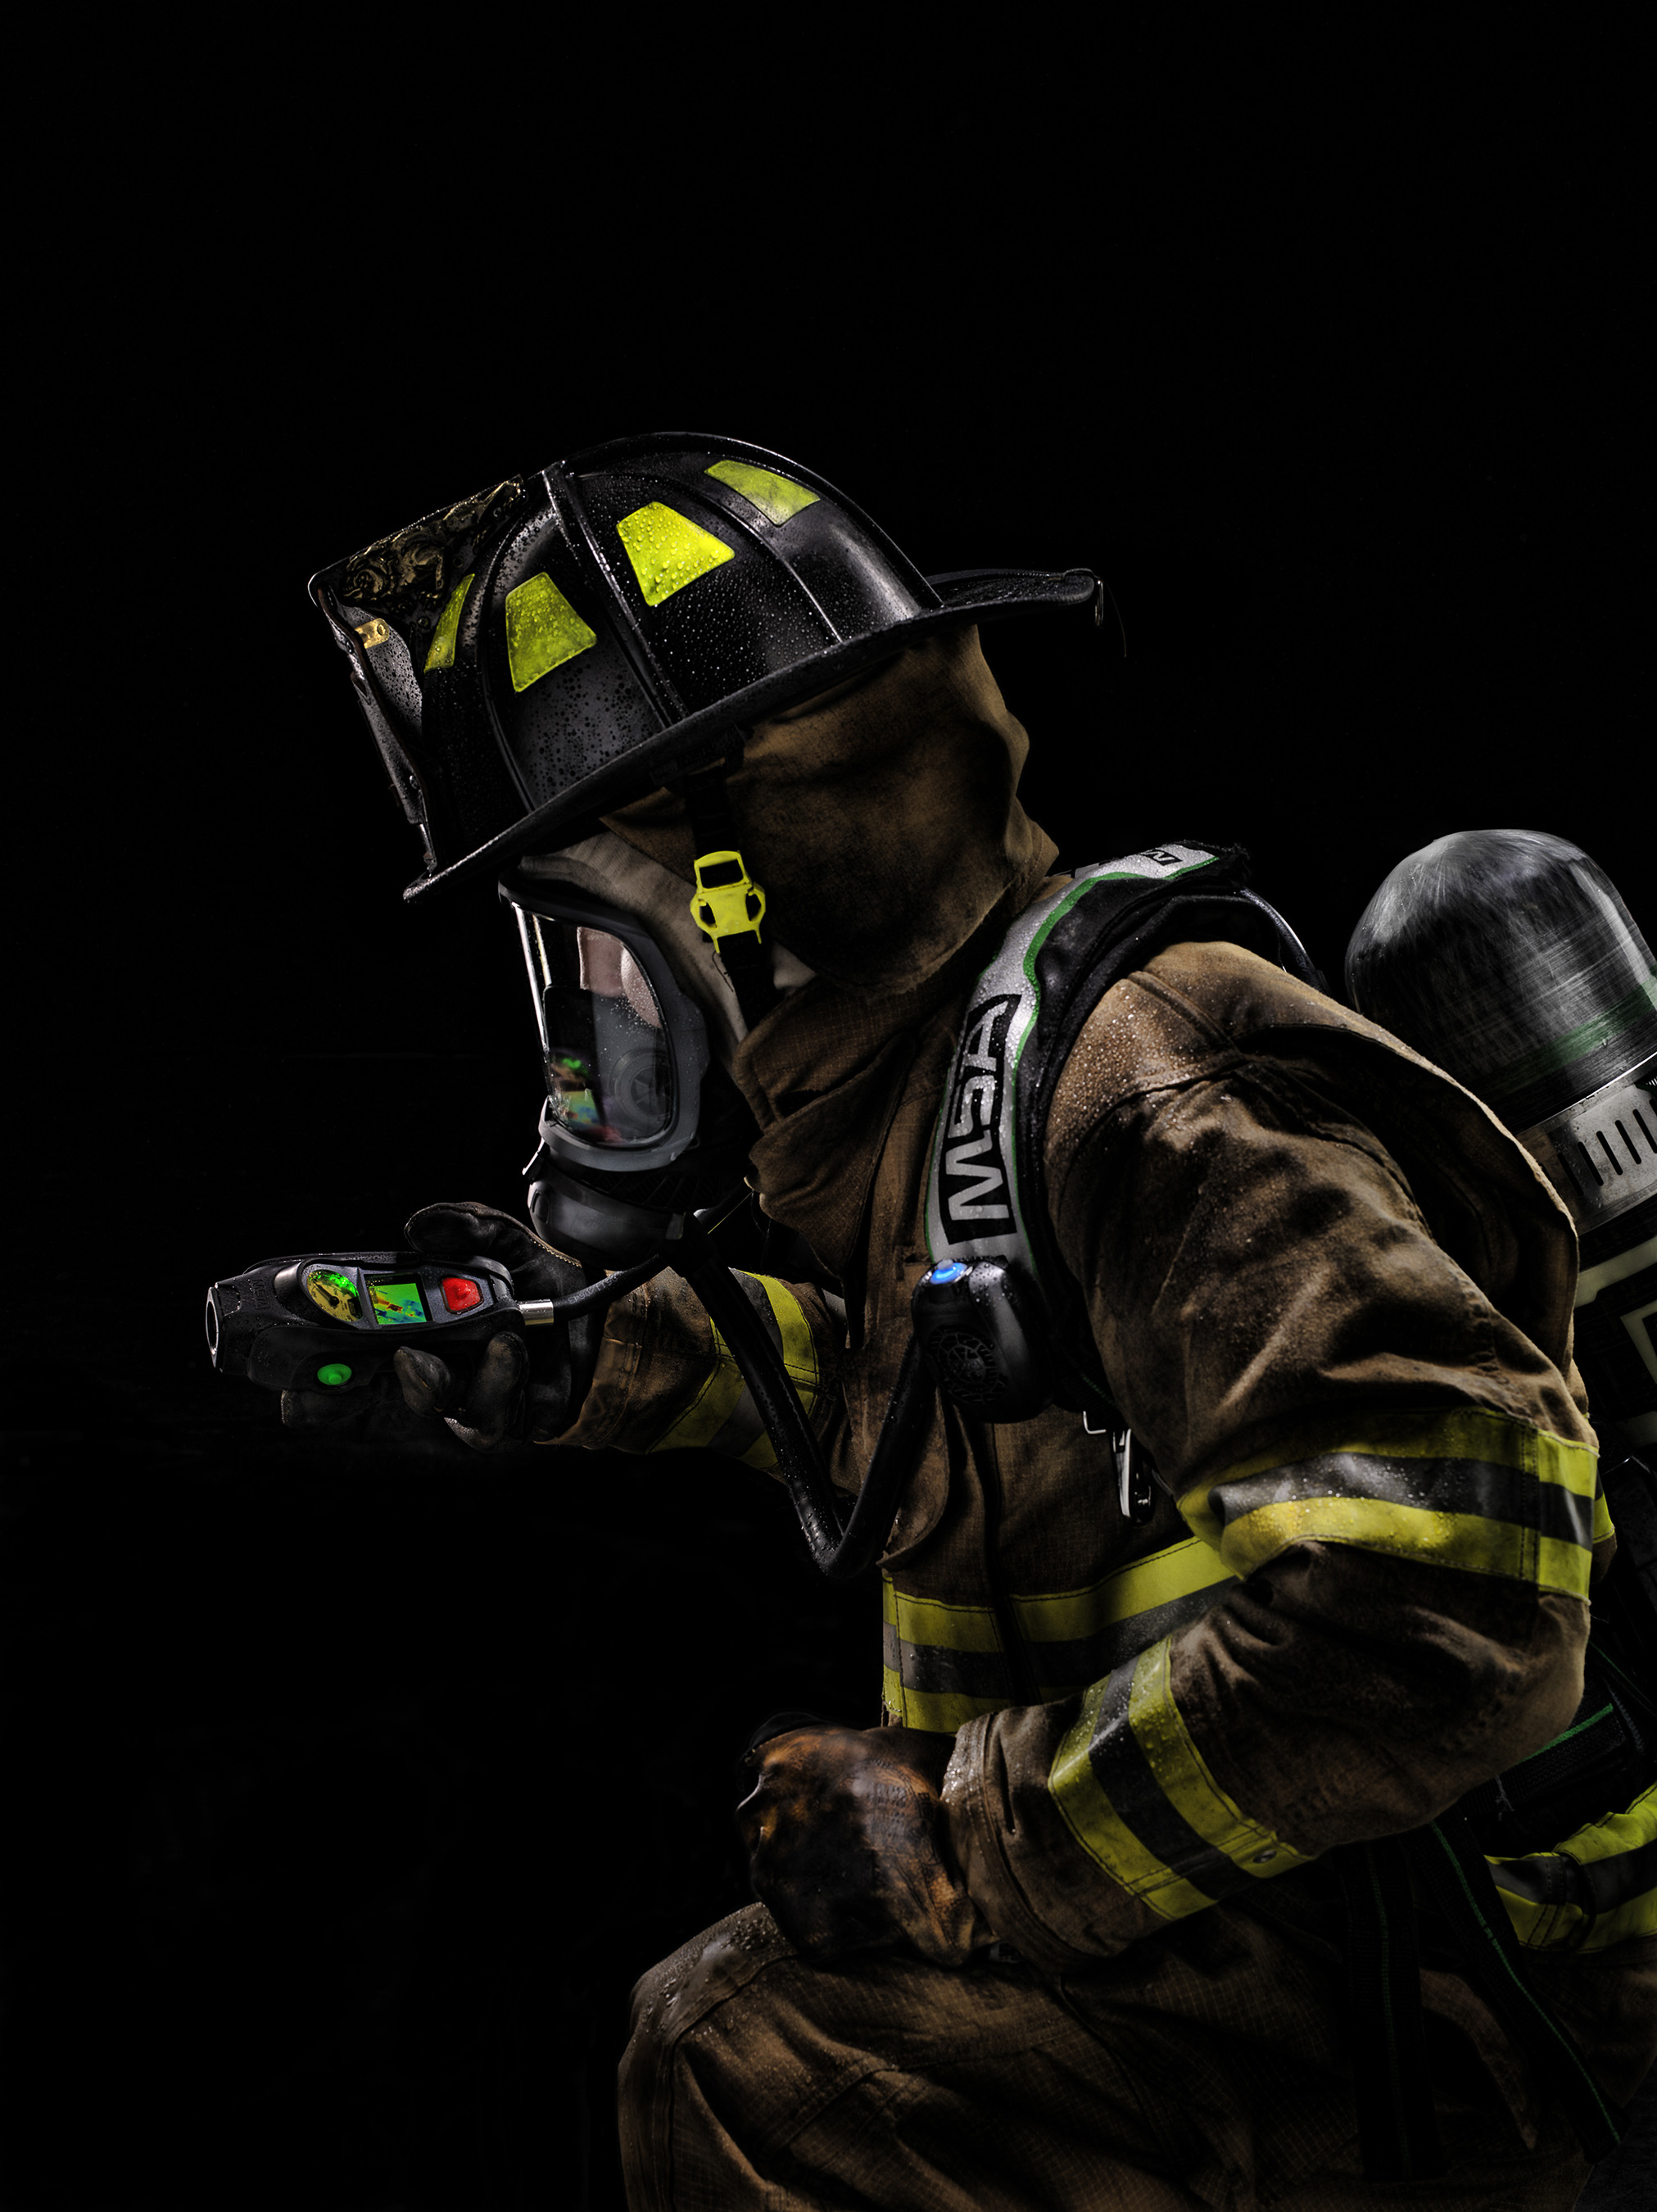 Integrated directly into the SCBA, the Integrated TIC uses the G1 SCBAs integrated power source and eliminates any chance of the TIC being forgotten.Integrated directly into the SCBA, the Integrated TIC uses the G1 SCBAs integrated power source and eliminates any chance of the TIC being forgotten.